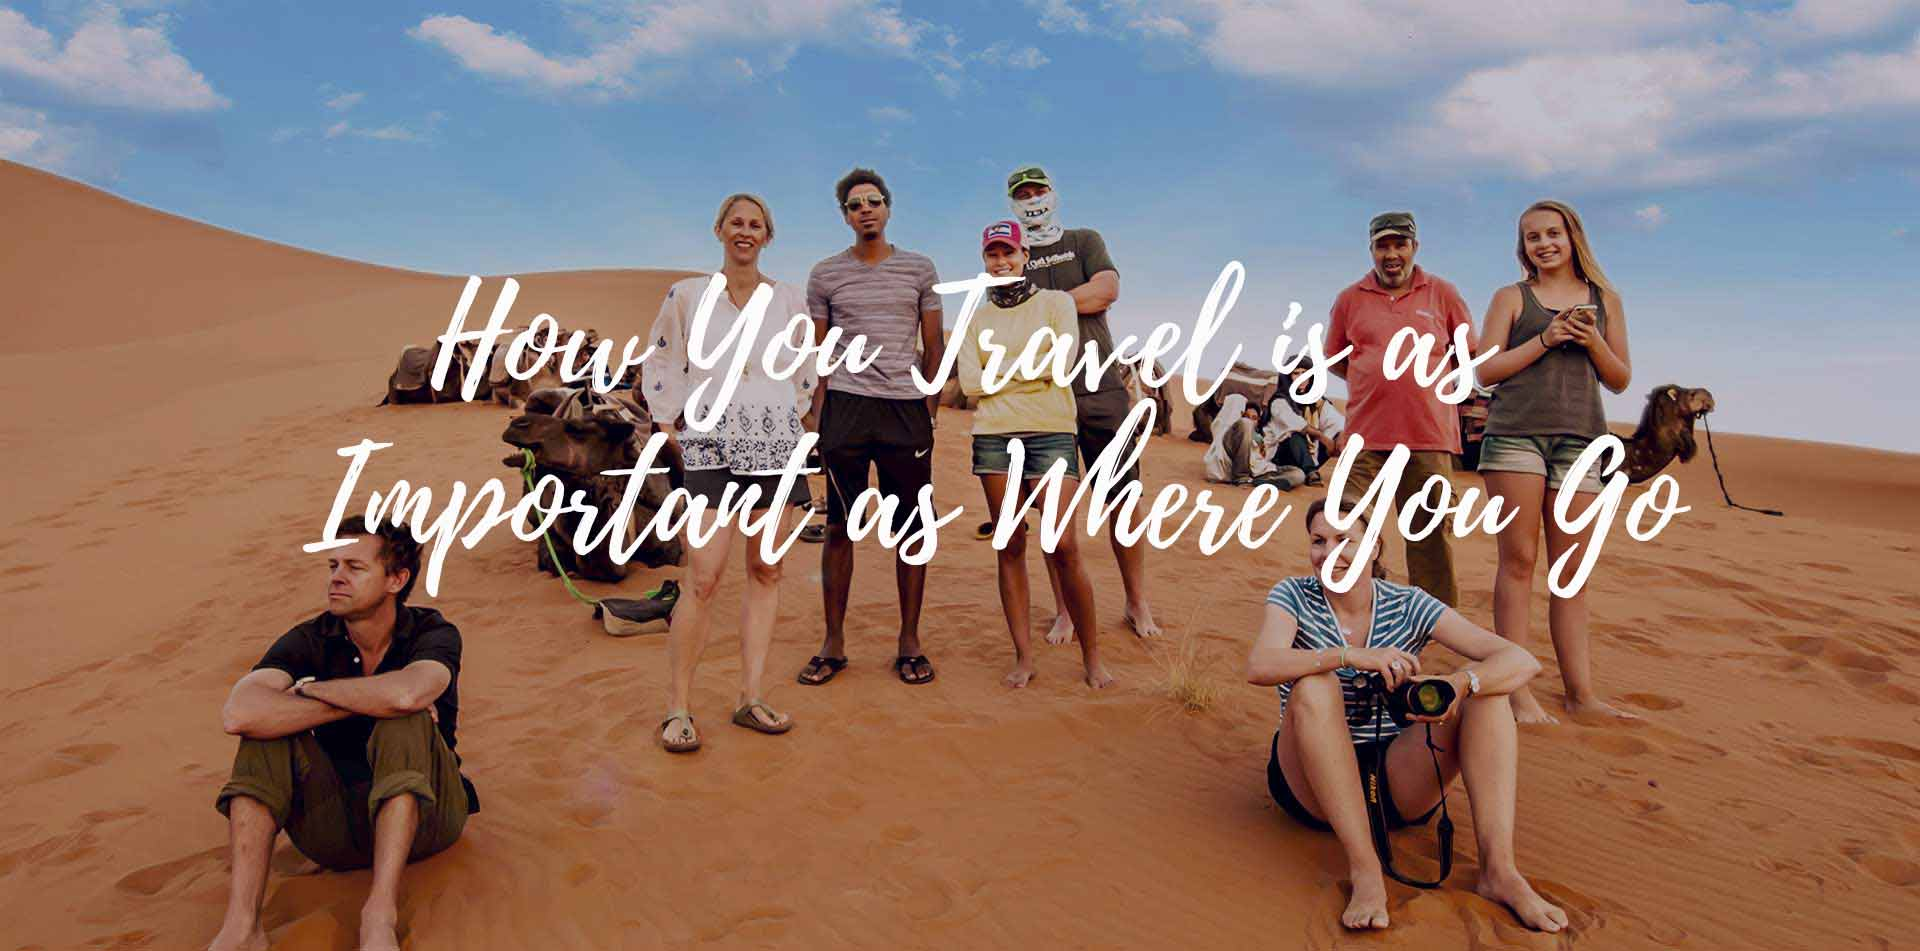 Africa Morocco family with camels sand dunes How you travel is as important as where you go - luxury vacation destinations